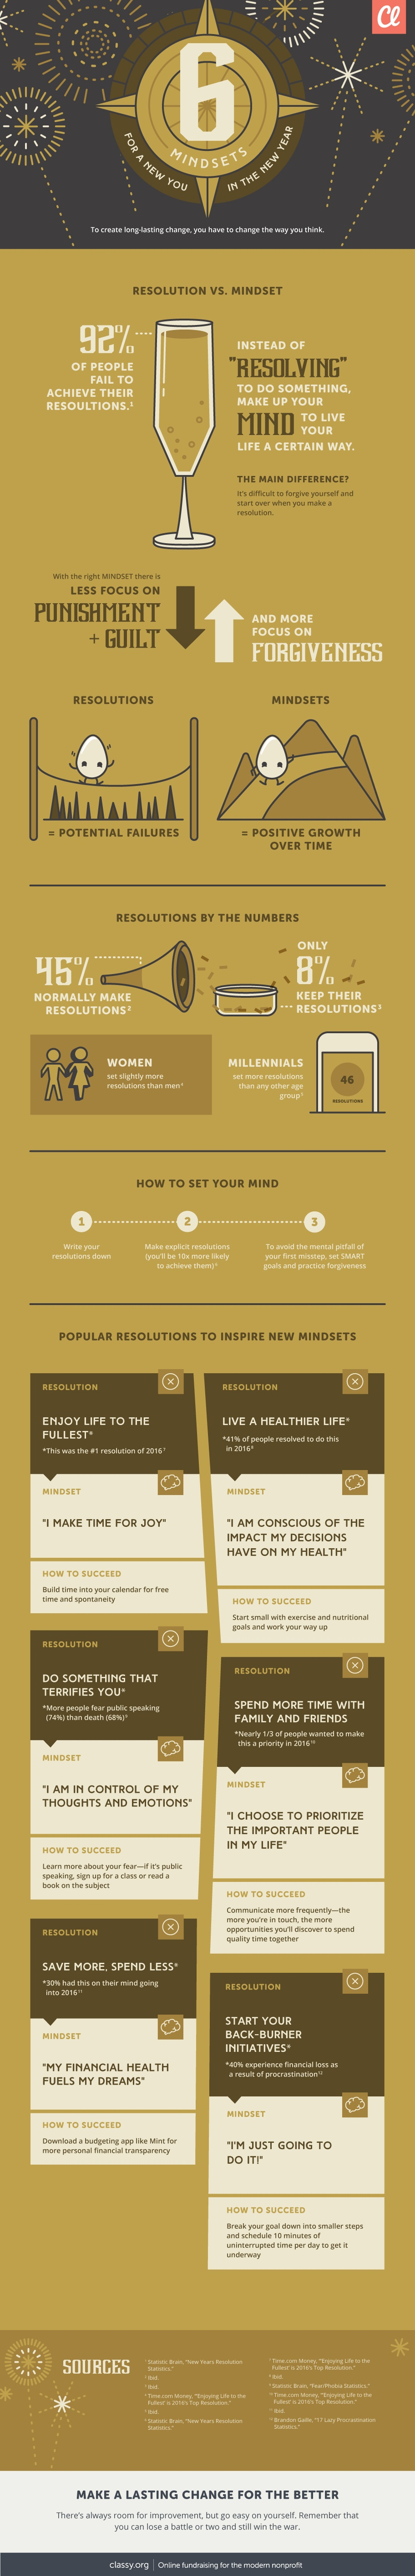 6 Mindsets for a New You in the New Year Infographic   e Learning     6 Mindsets for a New You in the New Year Infographic